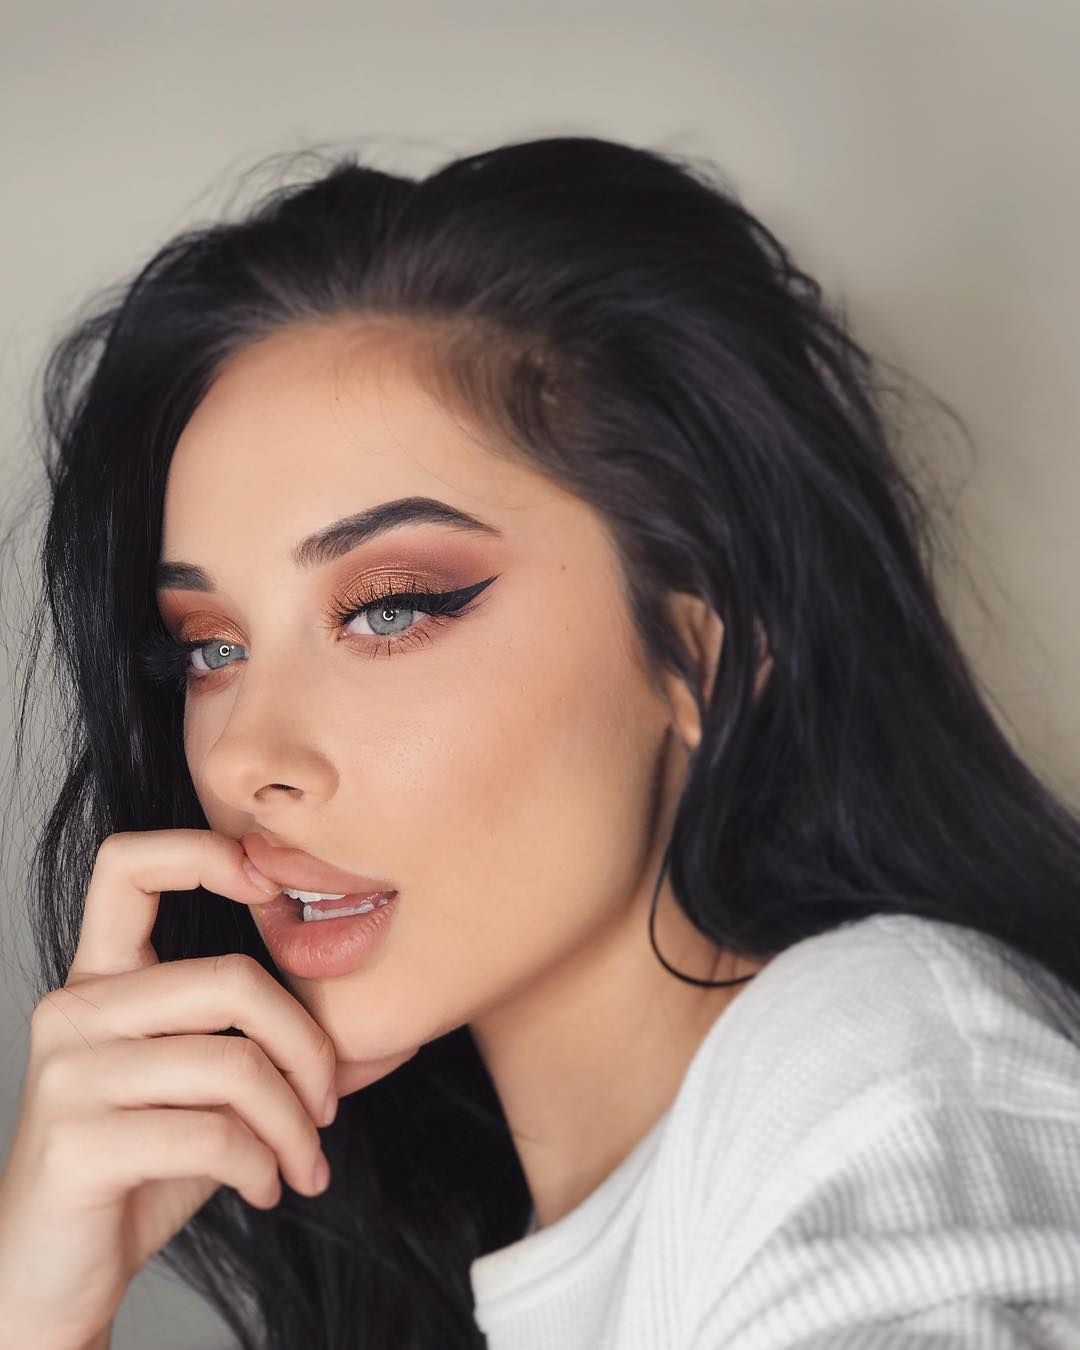 """Photo of Gina Shkeda on Instagram: """"nice warm tones Gina. Incredible. Revolutionary. Never been done. Creative af. Makeup artists who. Warm tones. Is that a morphe warm tones…"""""""